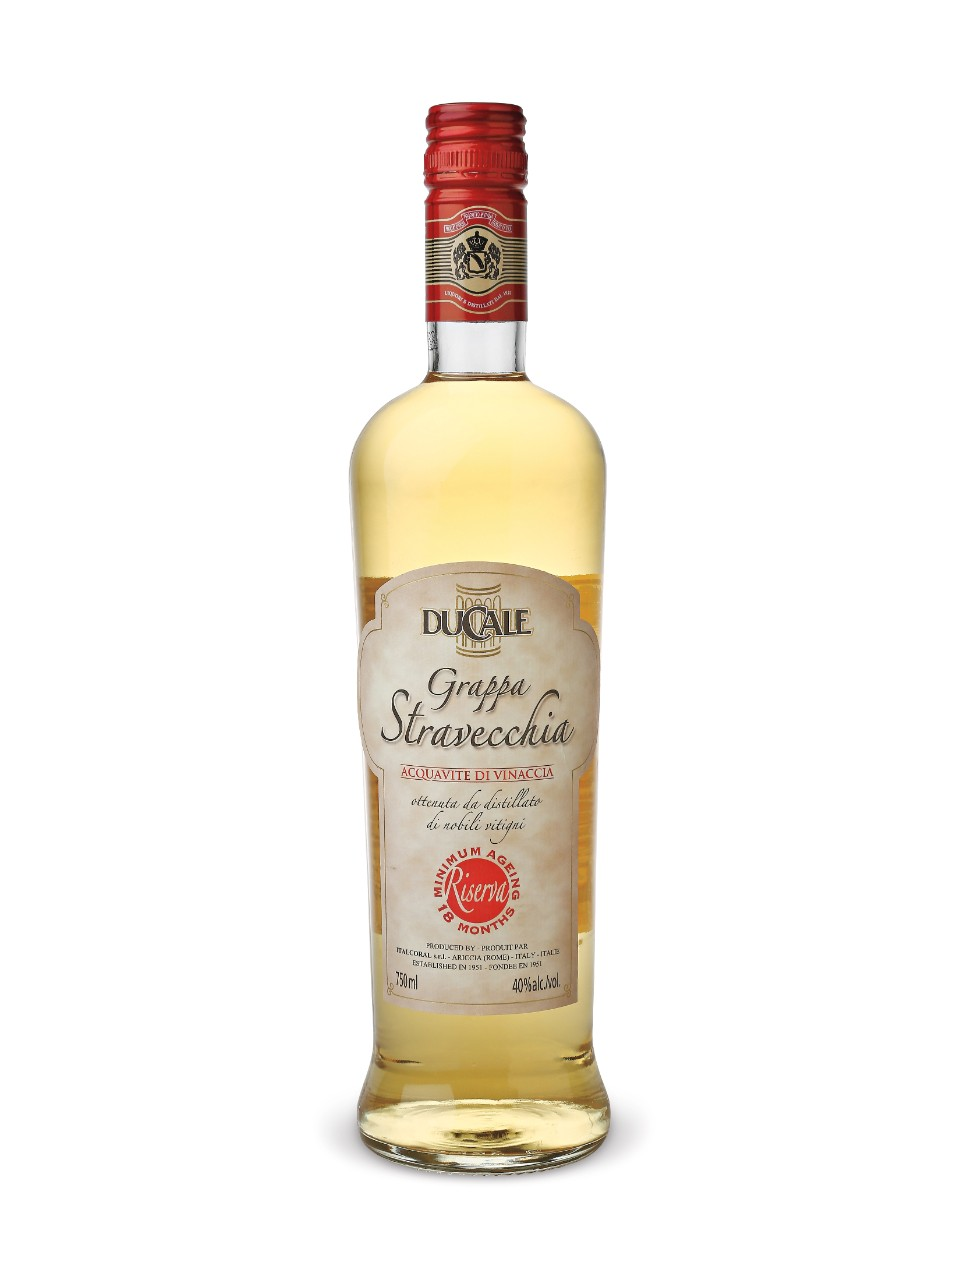 Image for Stravecchia Grappa from LCBO